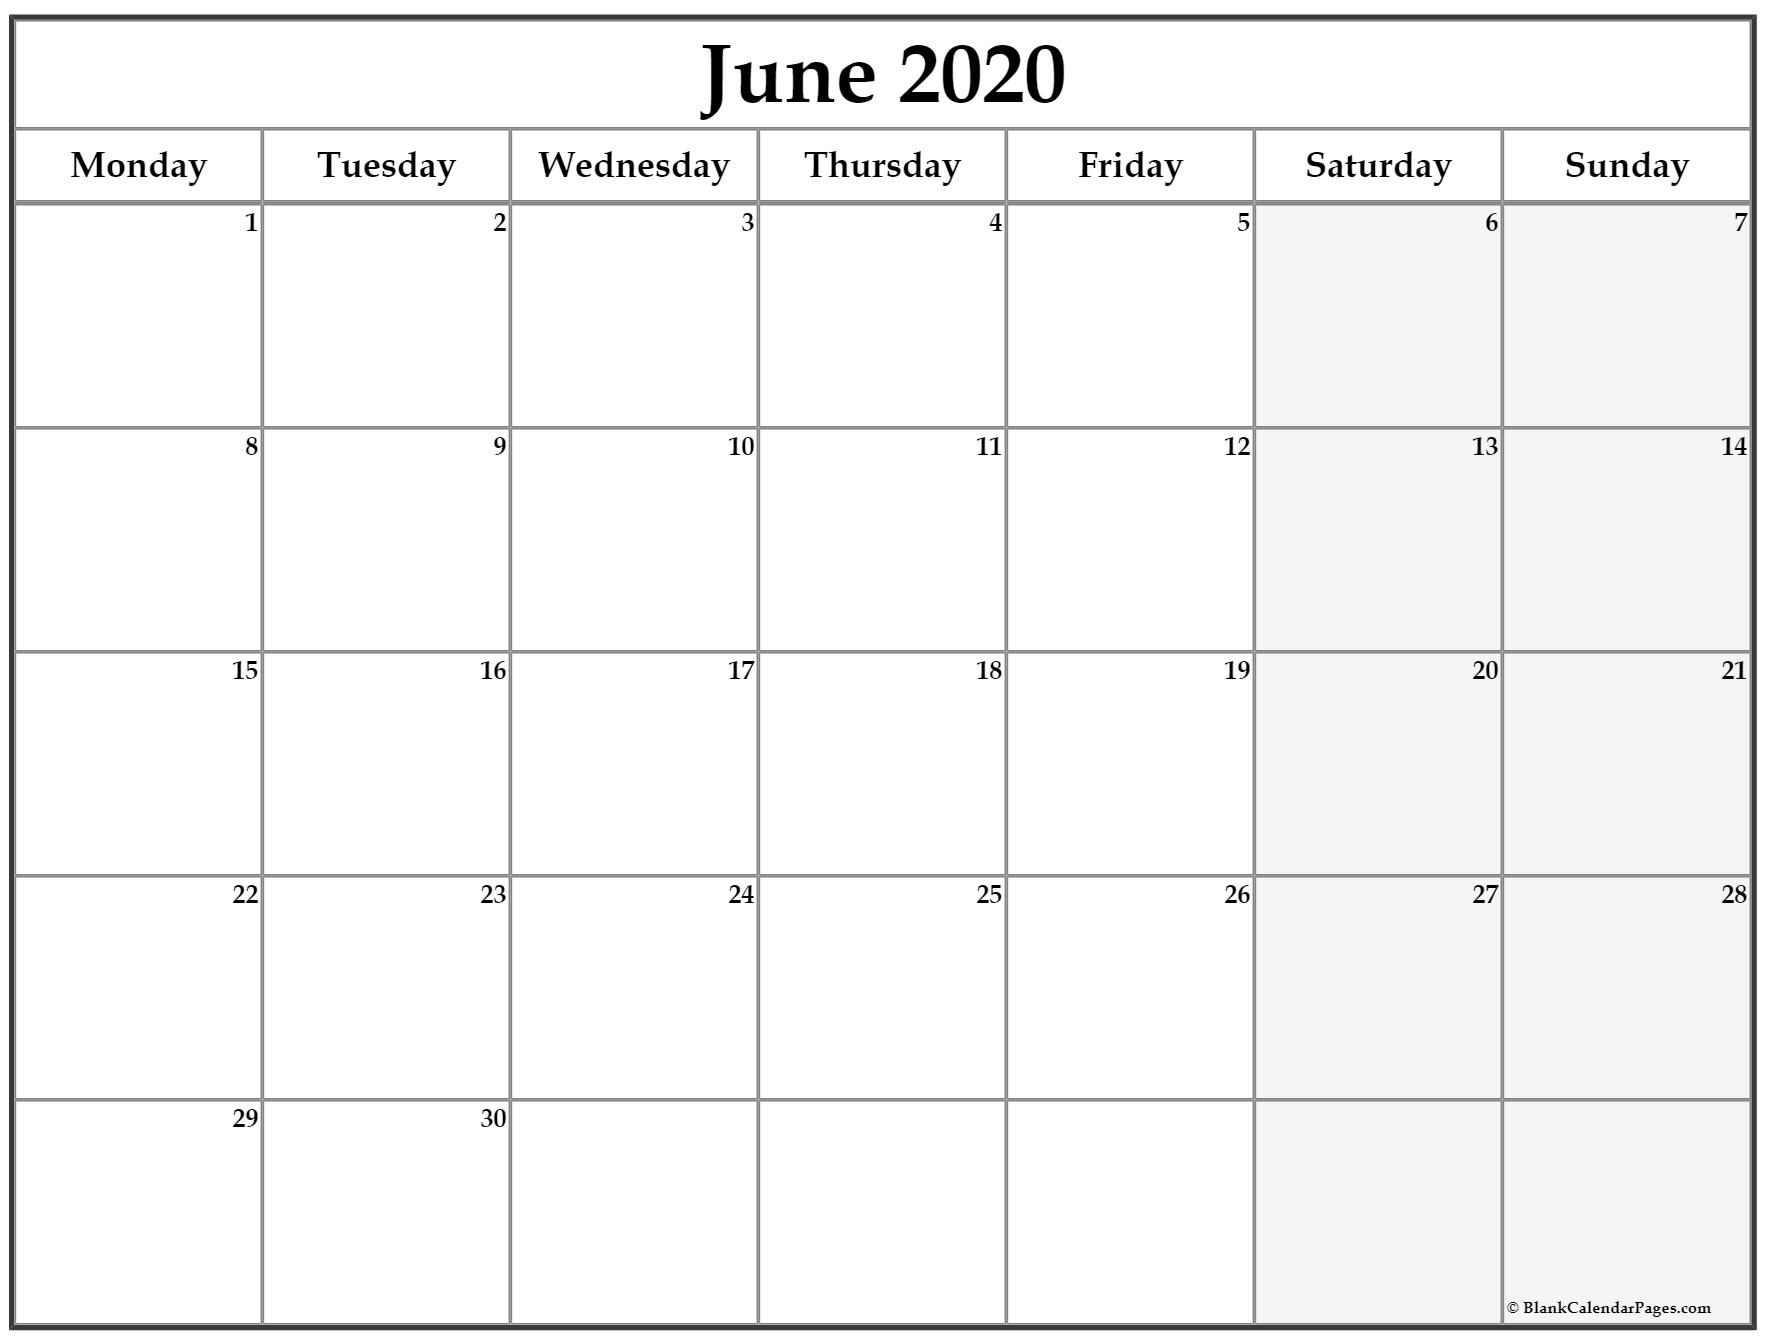 June 2020 Monday Calendar | Monday To Sunday